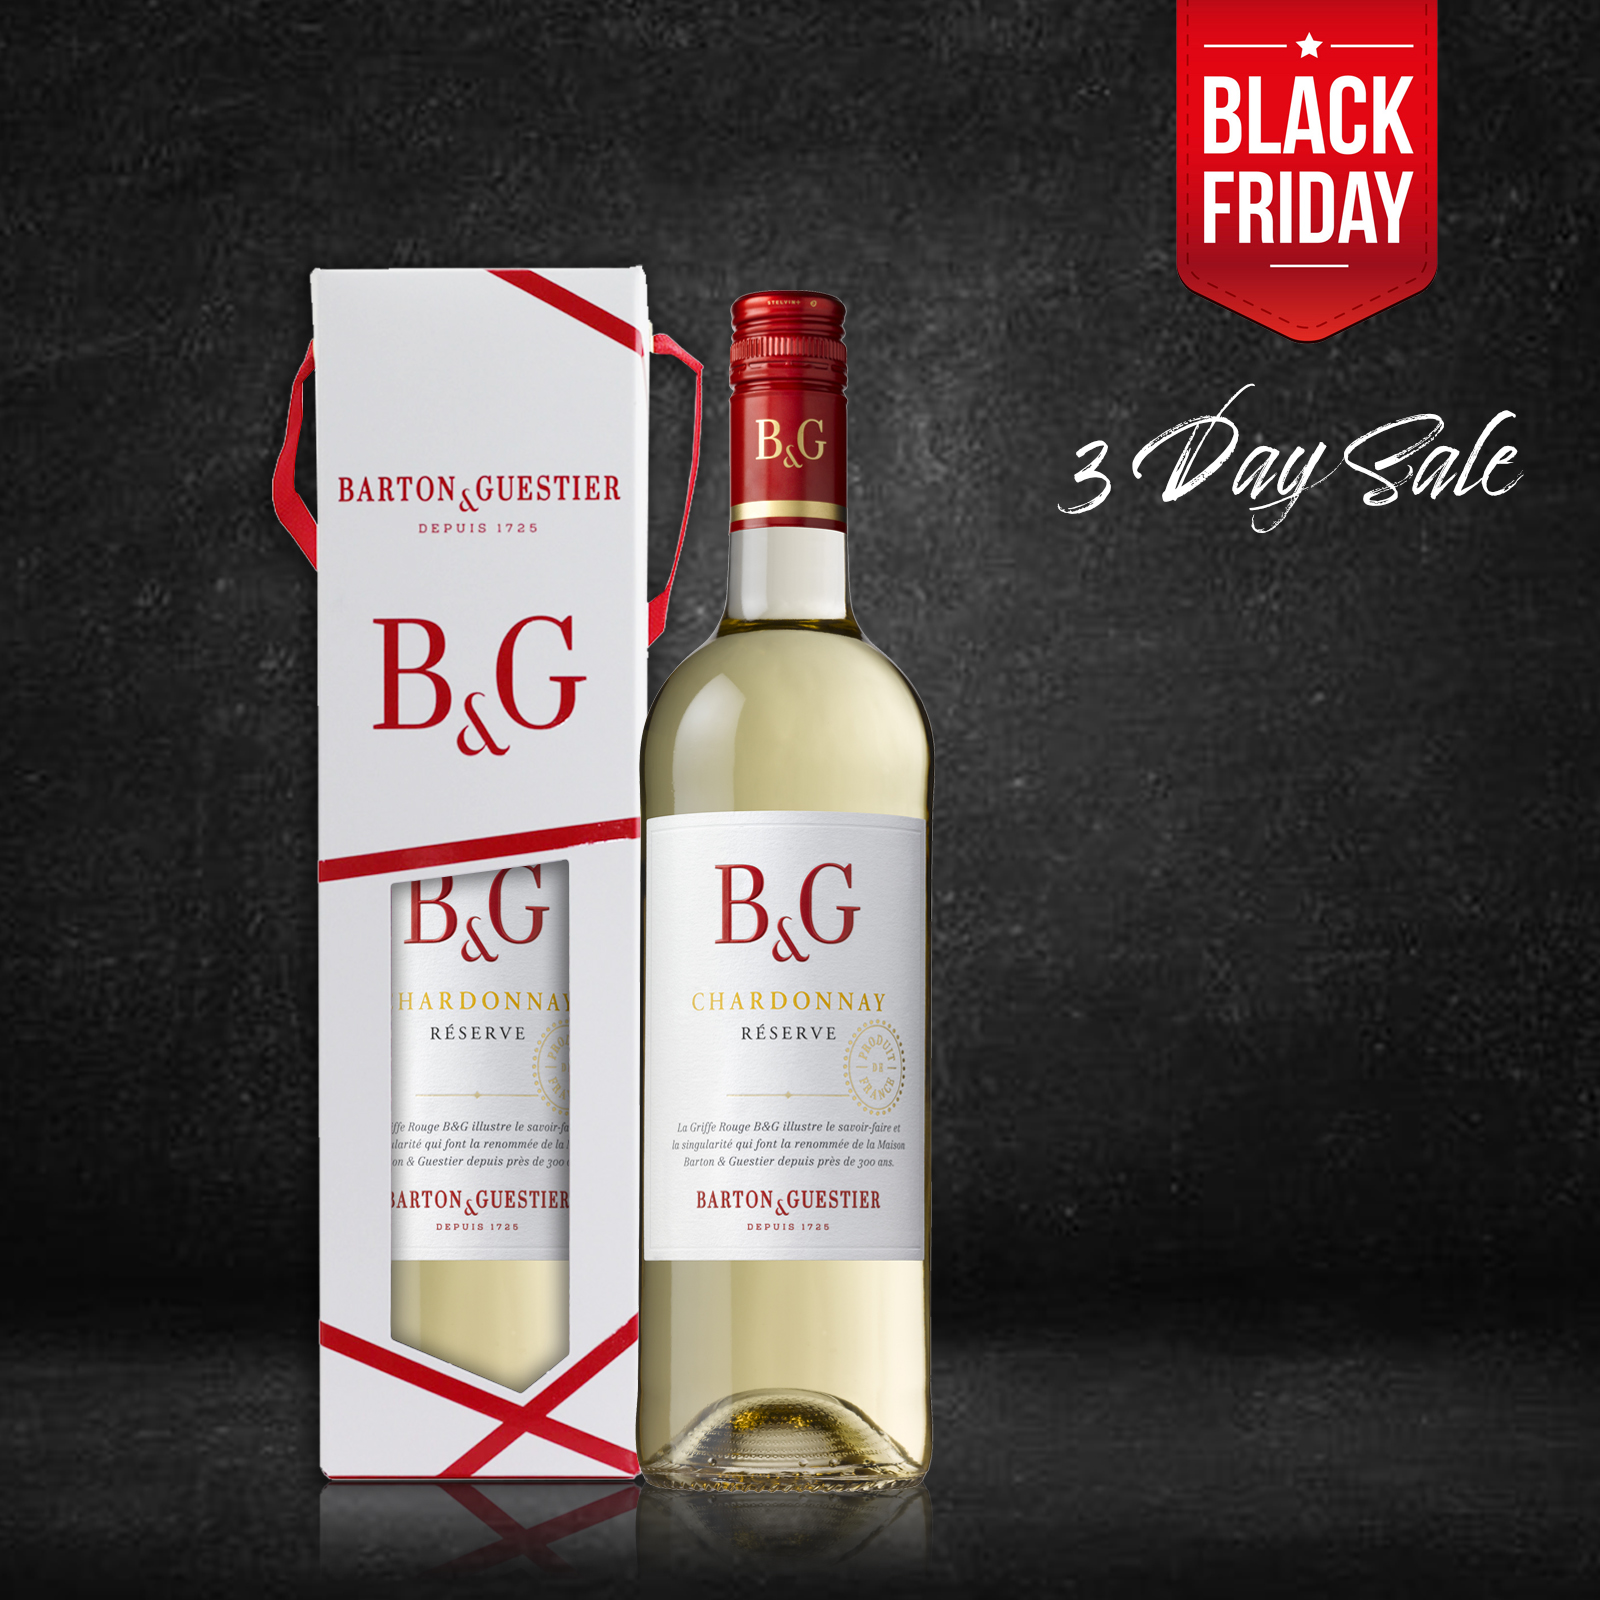 B&G Chardonnay Reserve 750ml with Gift Box